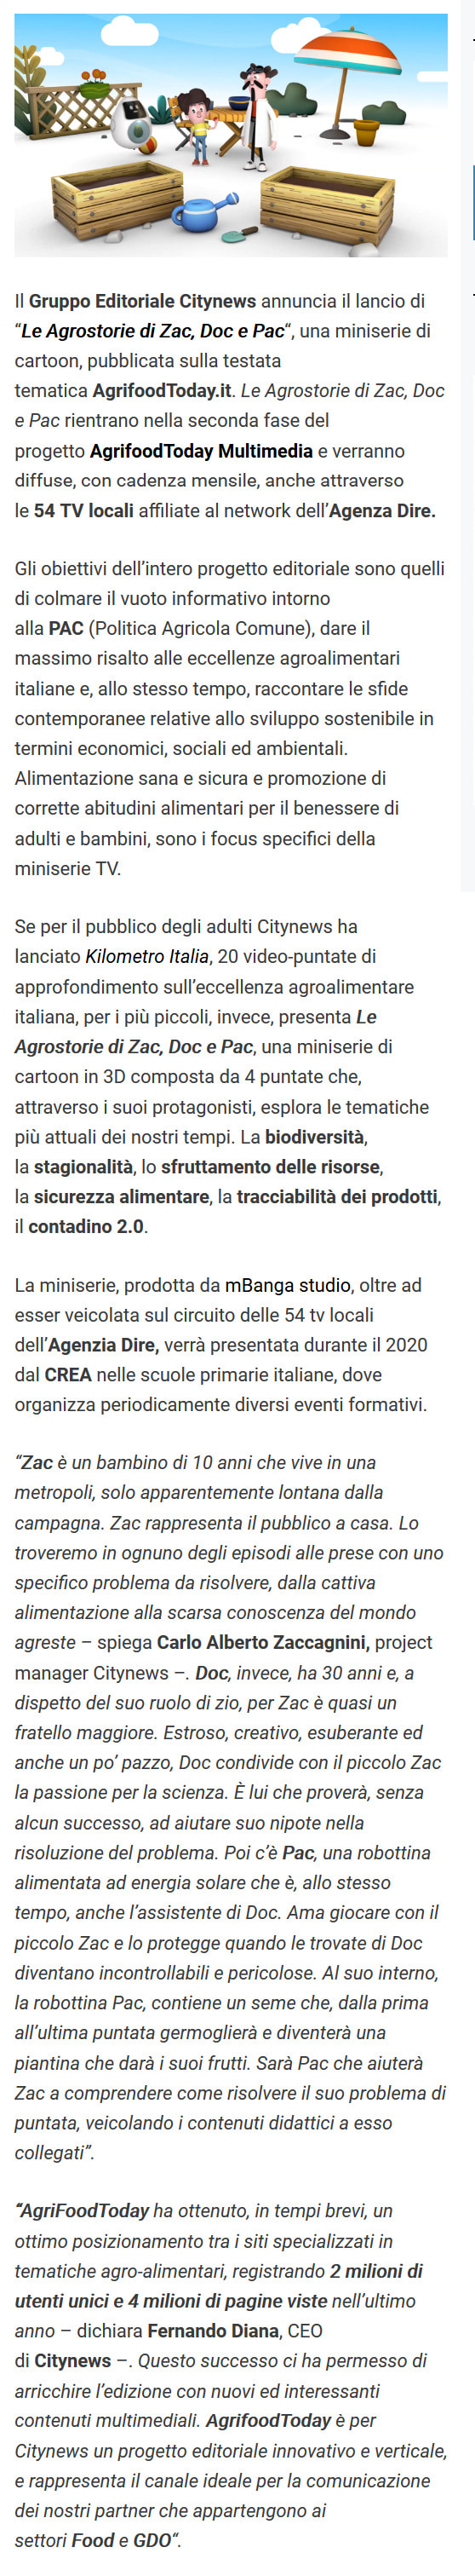 CITYNEWS ANNUNCIA LE AGROSTORIE DI ZAC, DOC E PAC, LA MINISERIE CARTOON ONLINE SU AGRIFOODTODAY.IT - Food Affairs, 28 gennaio 2020-2